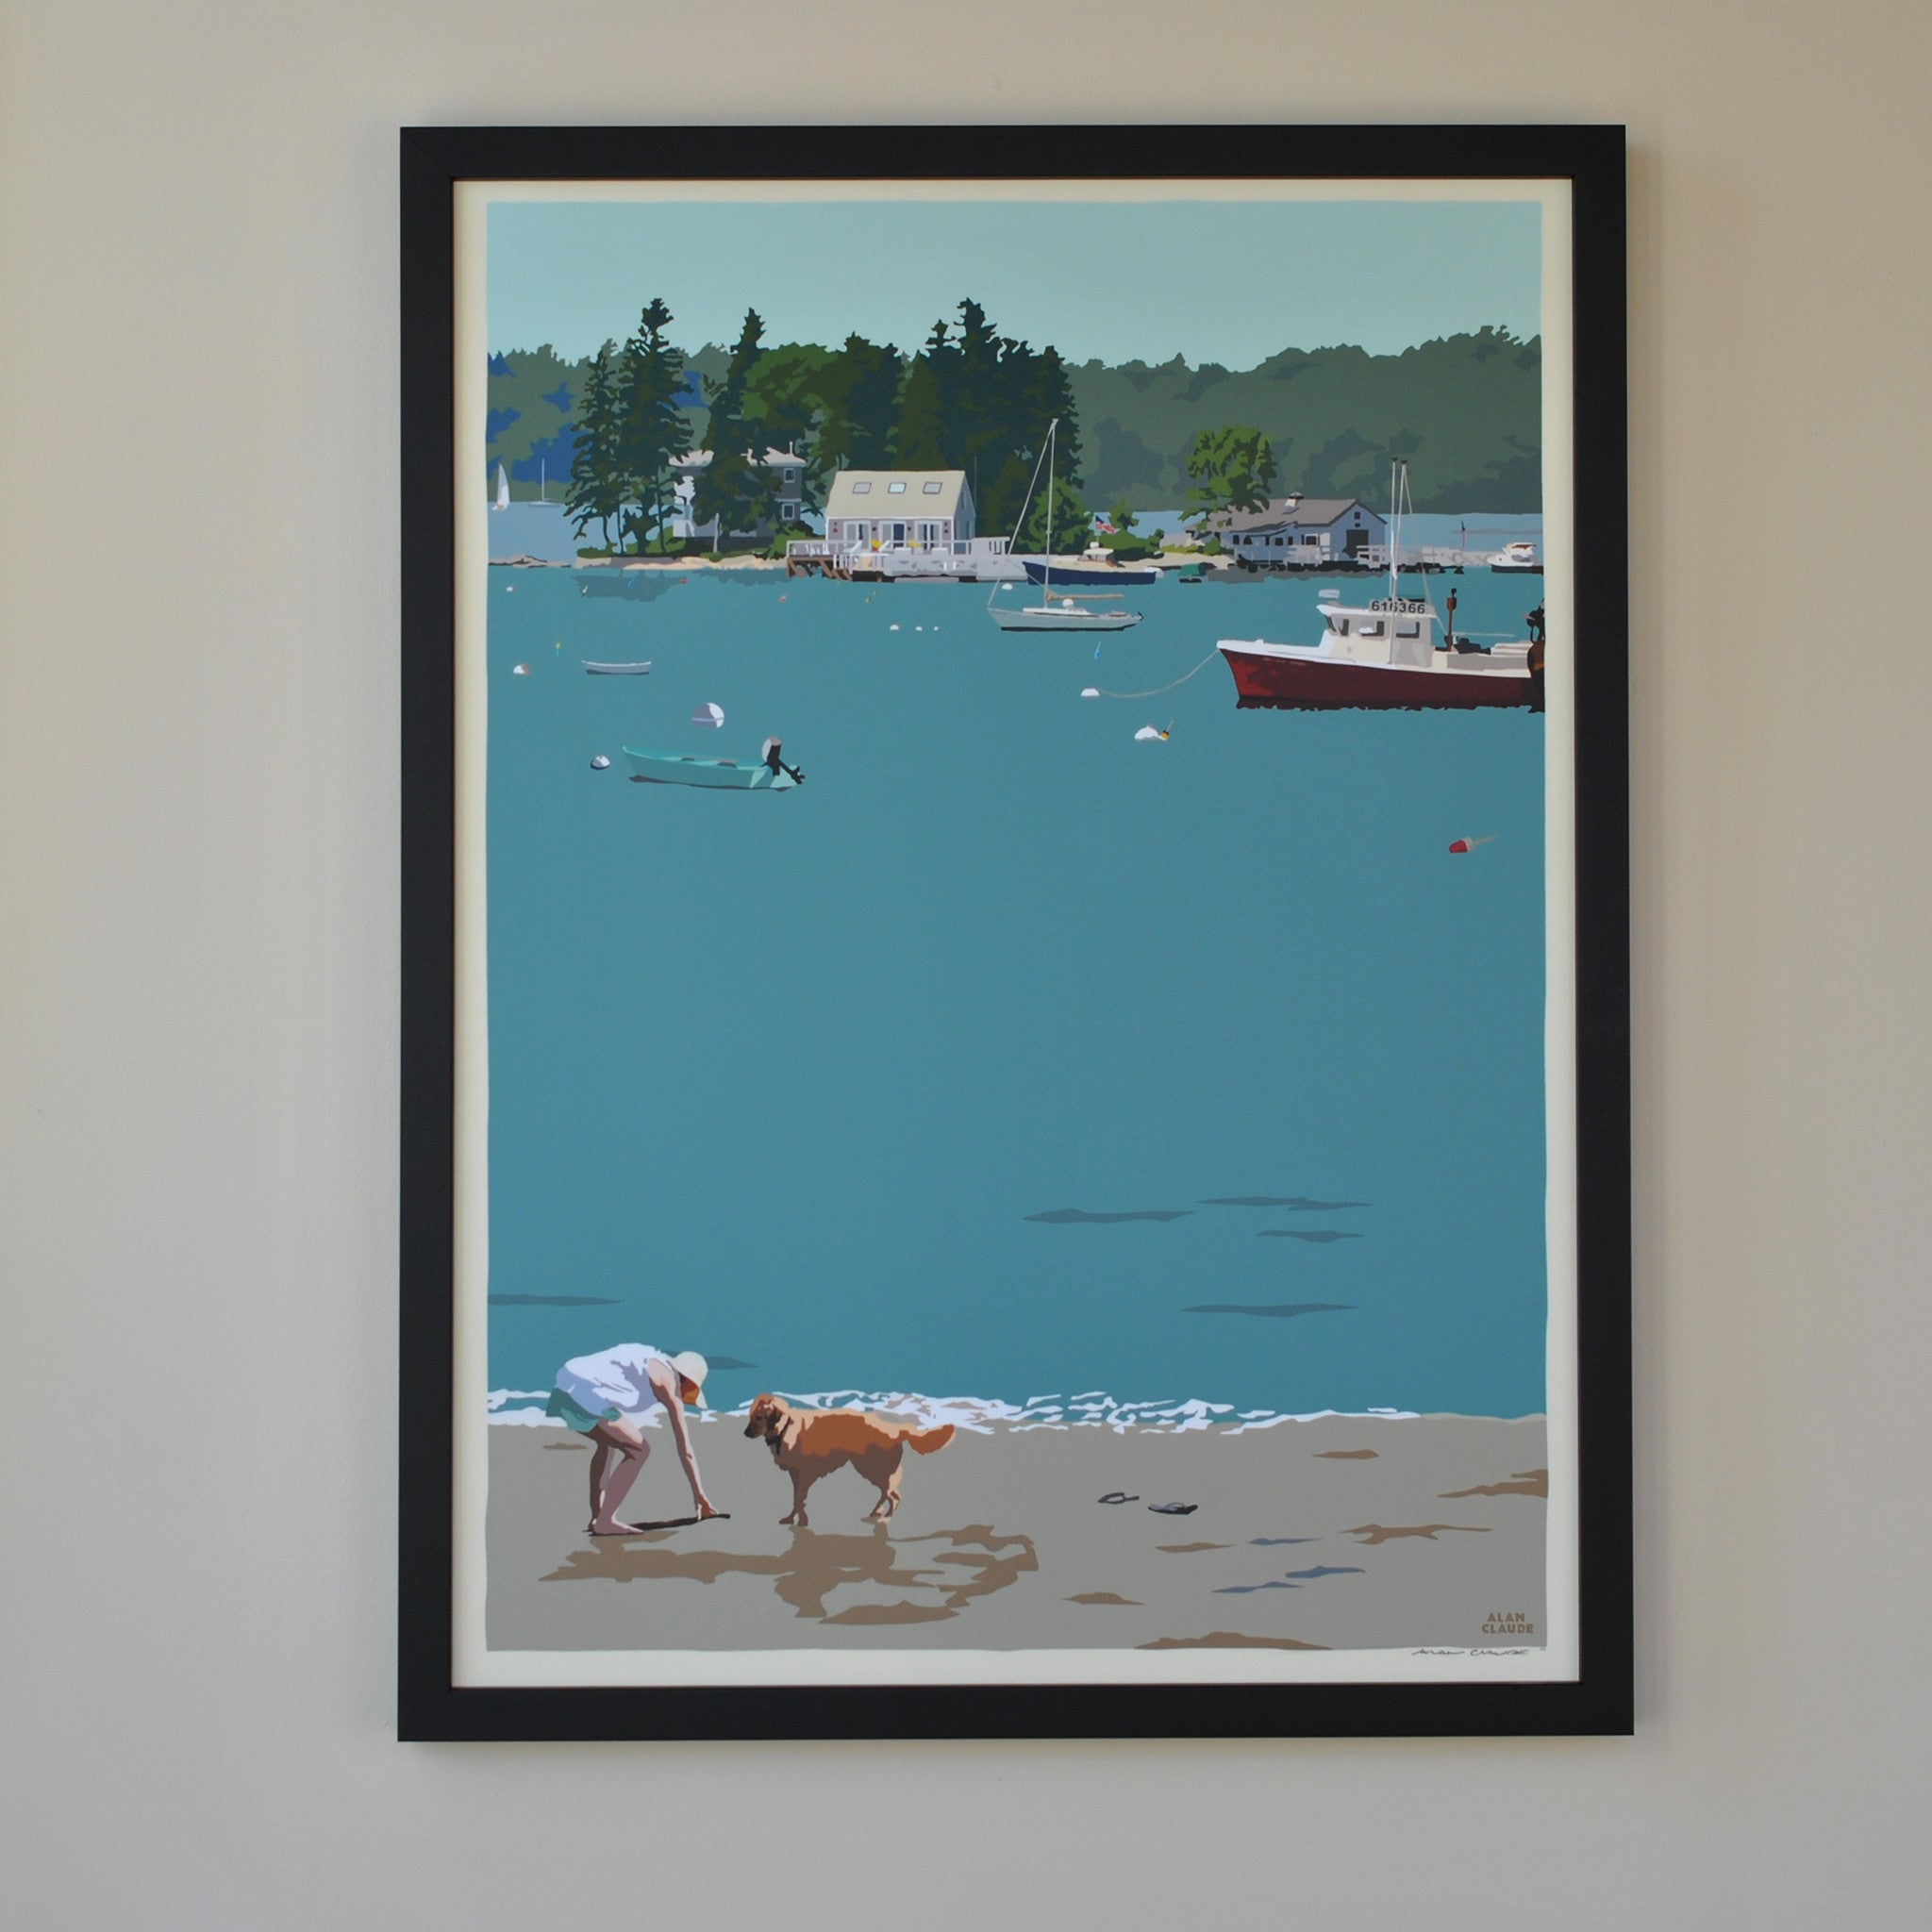 "Golden Retriever at Beach ""Go Fetch"" Art Print 18"" x 24"" Framed Wall Poster - Maine"